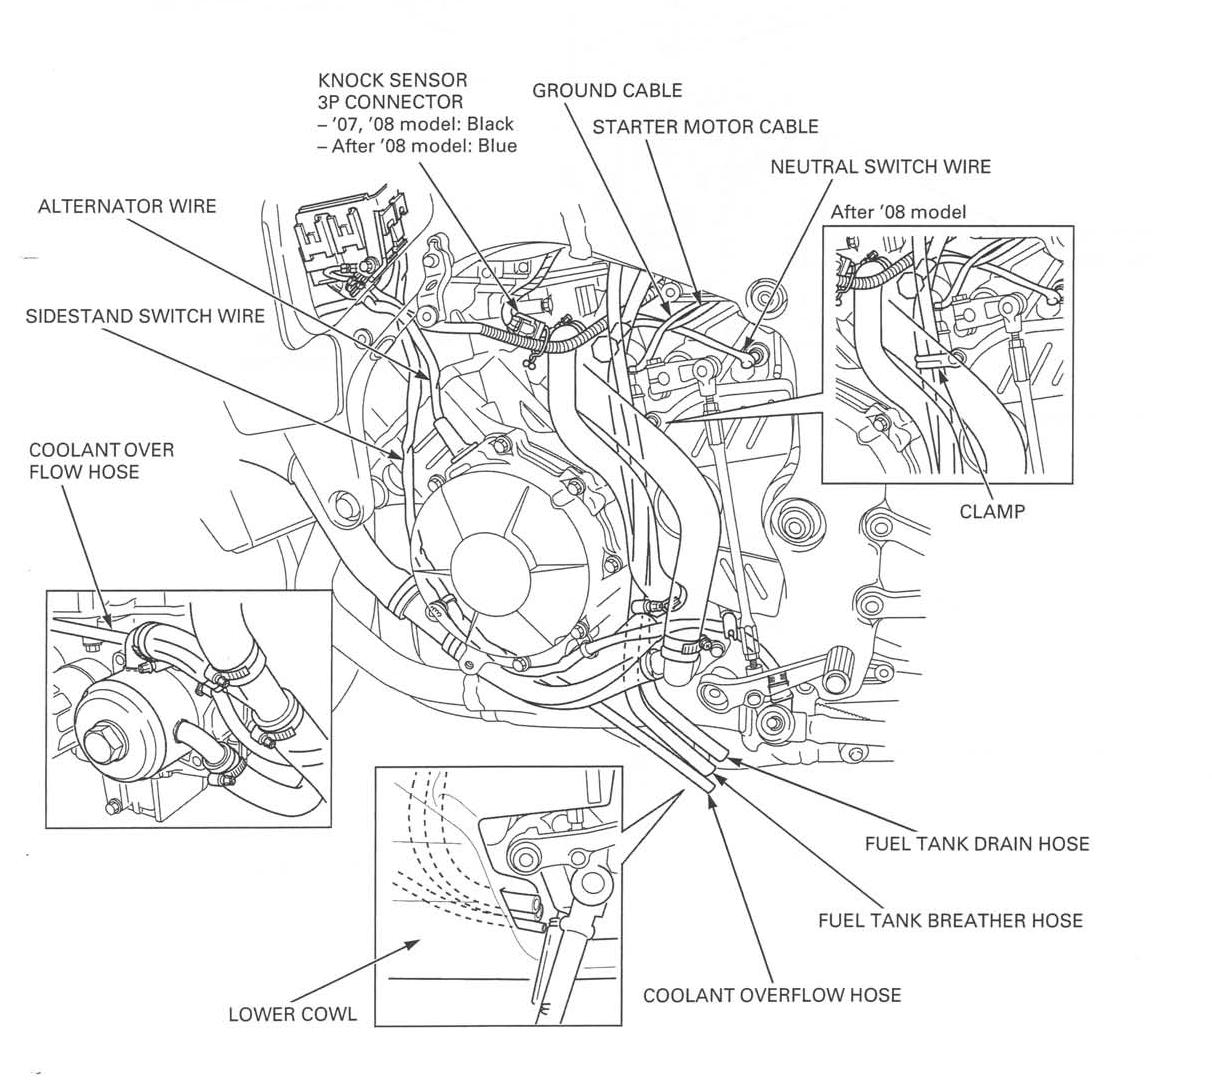 05 Cbr600rr Wiring Diagram Auto Electrical Honda 2006